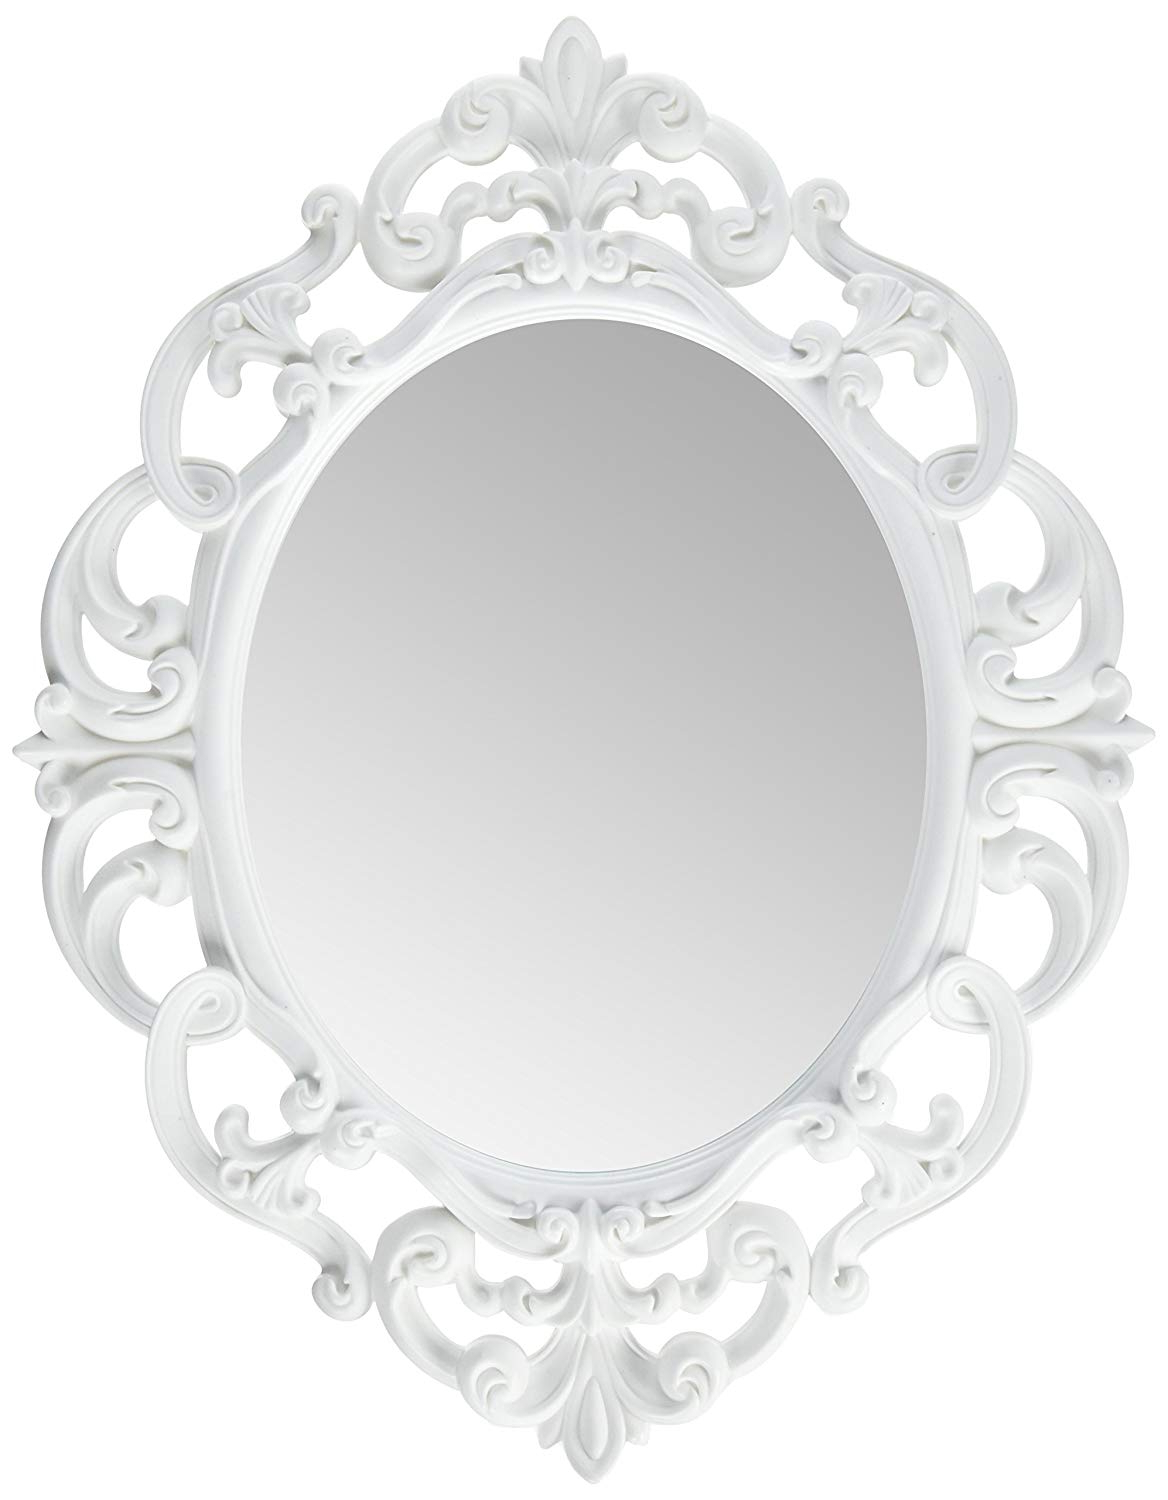 Kole White Oval Vintage Wall Mirror With Regard To Best And Newest Vintage Wall Mirrors (View 7 of 20)